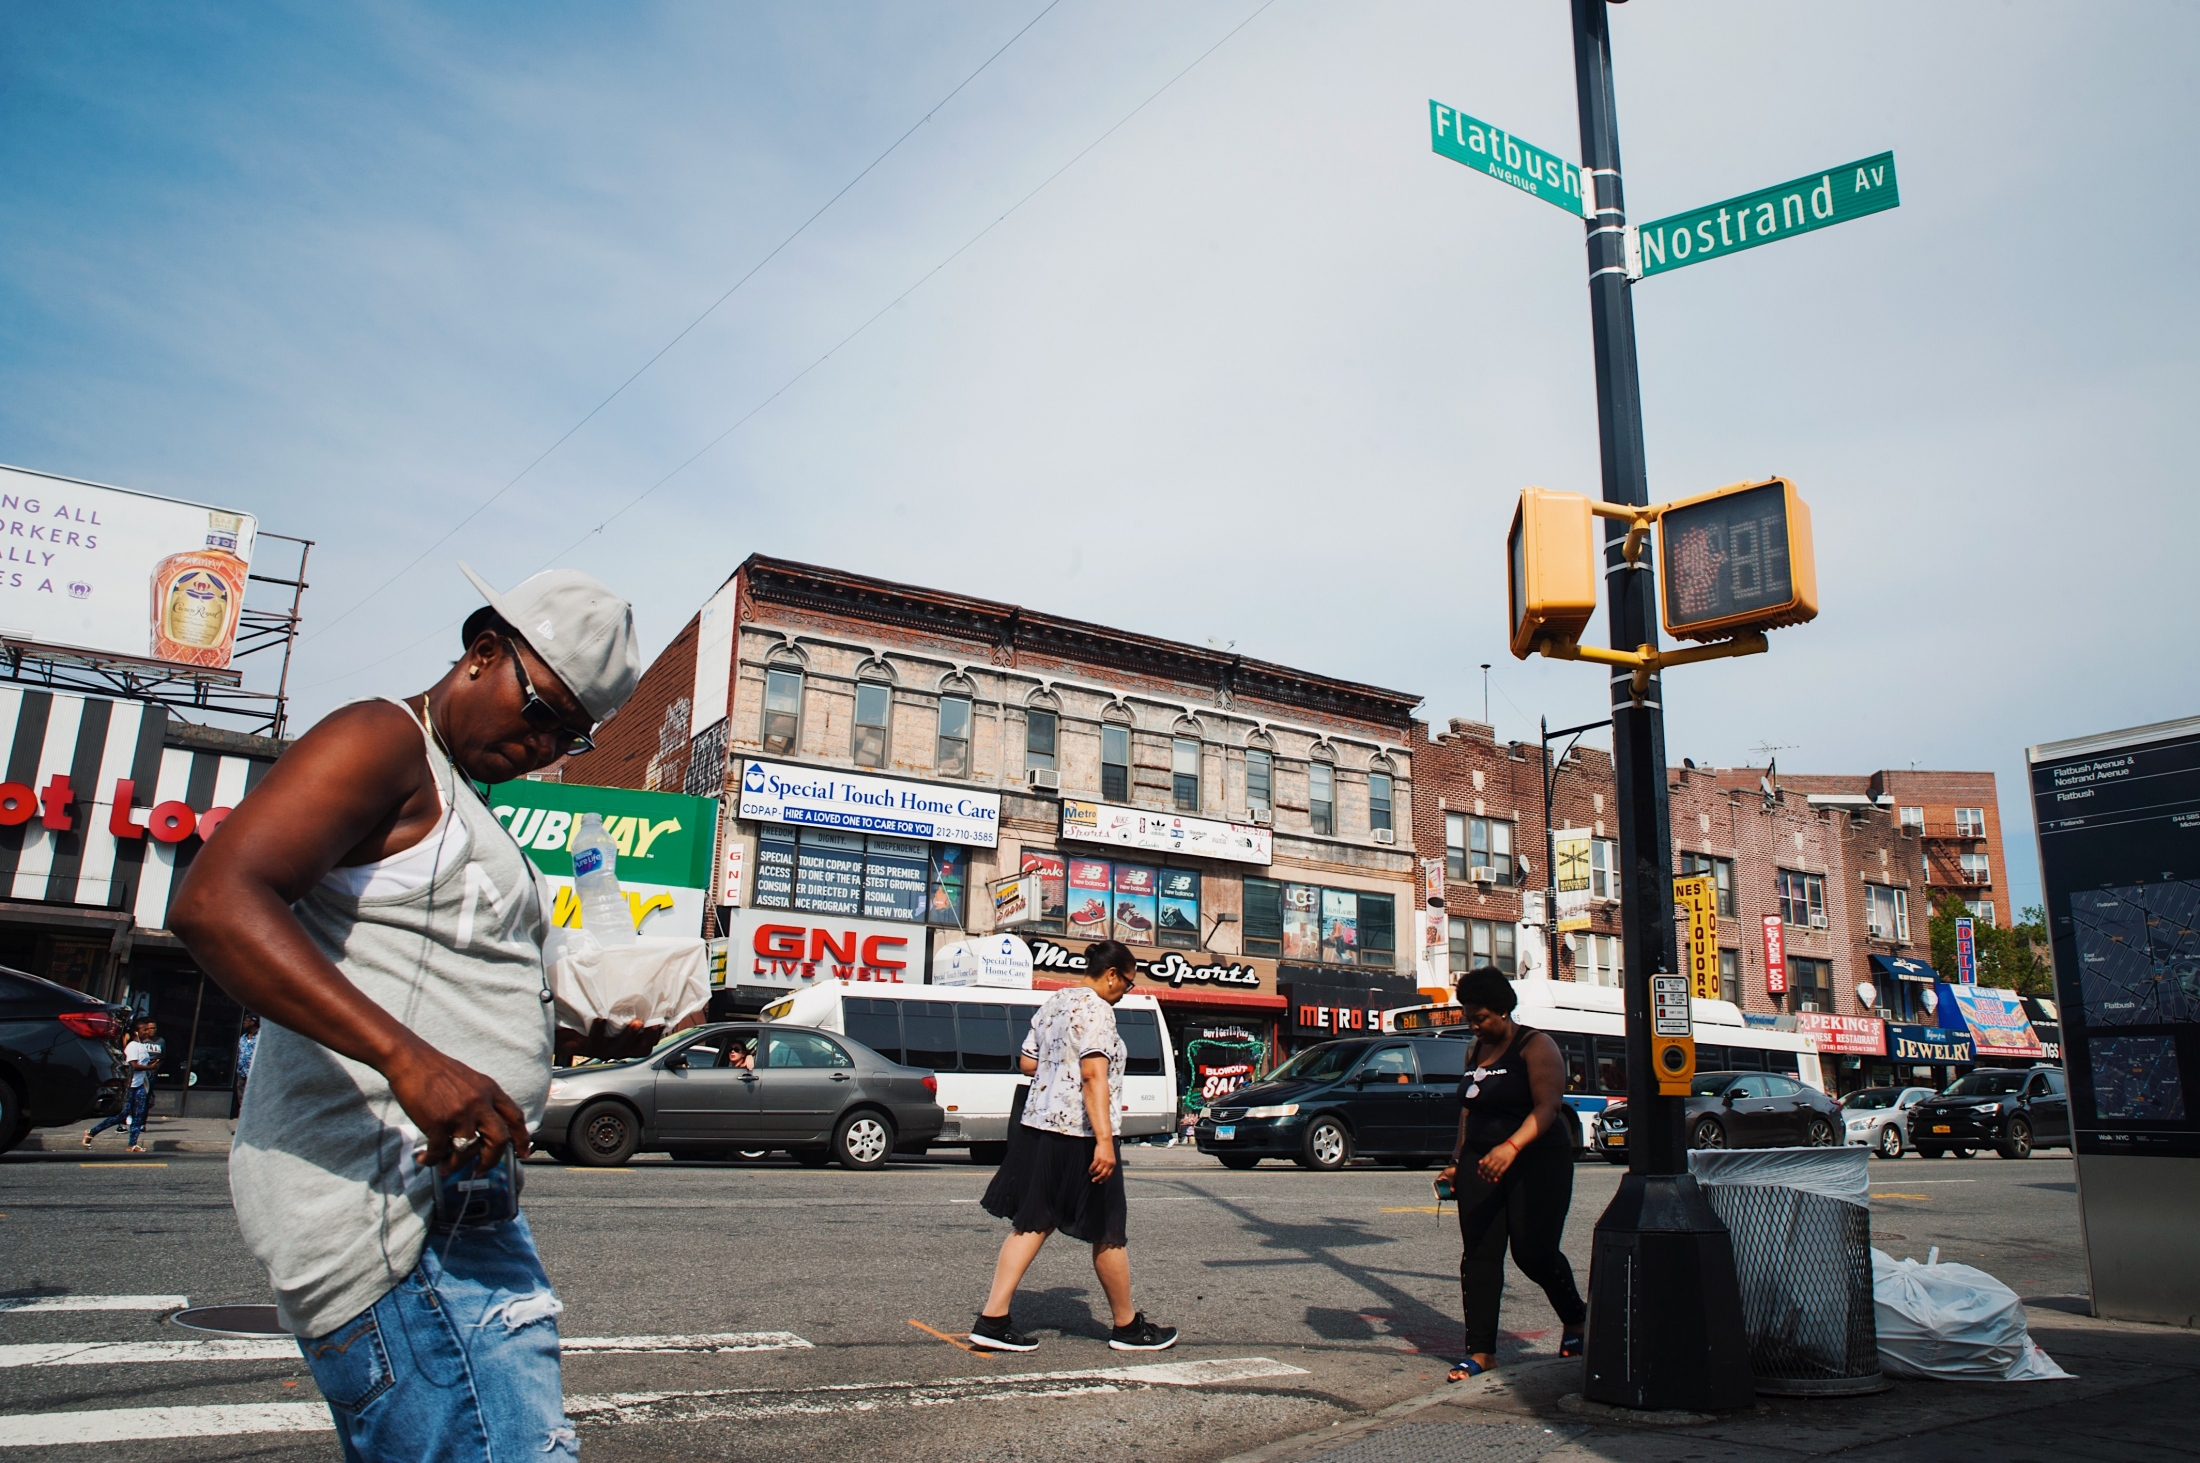 The corner of Flatbush and Nostrand, also known as Flatbush Junction.